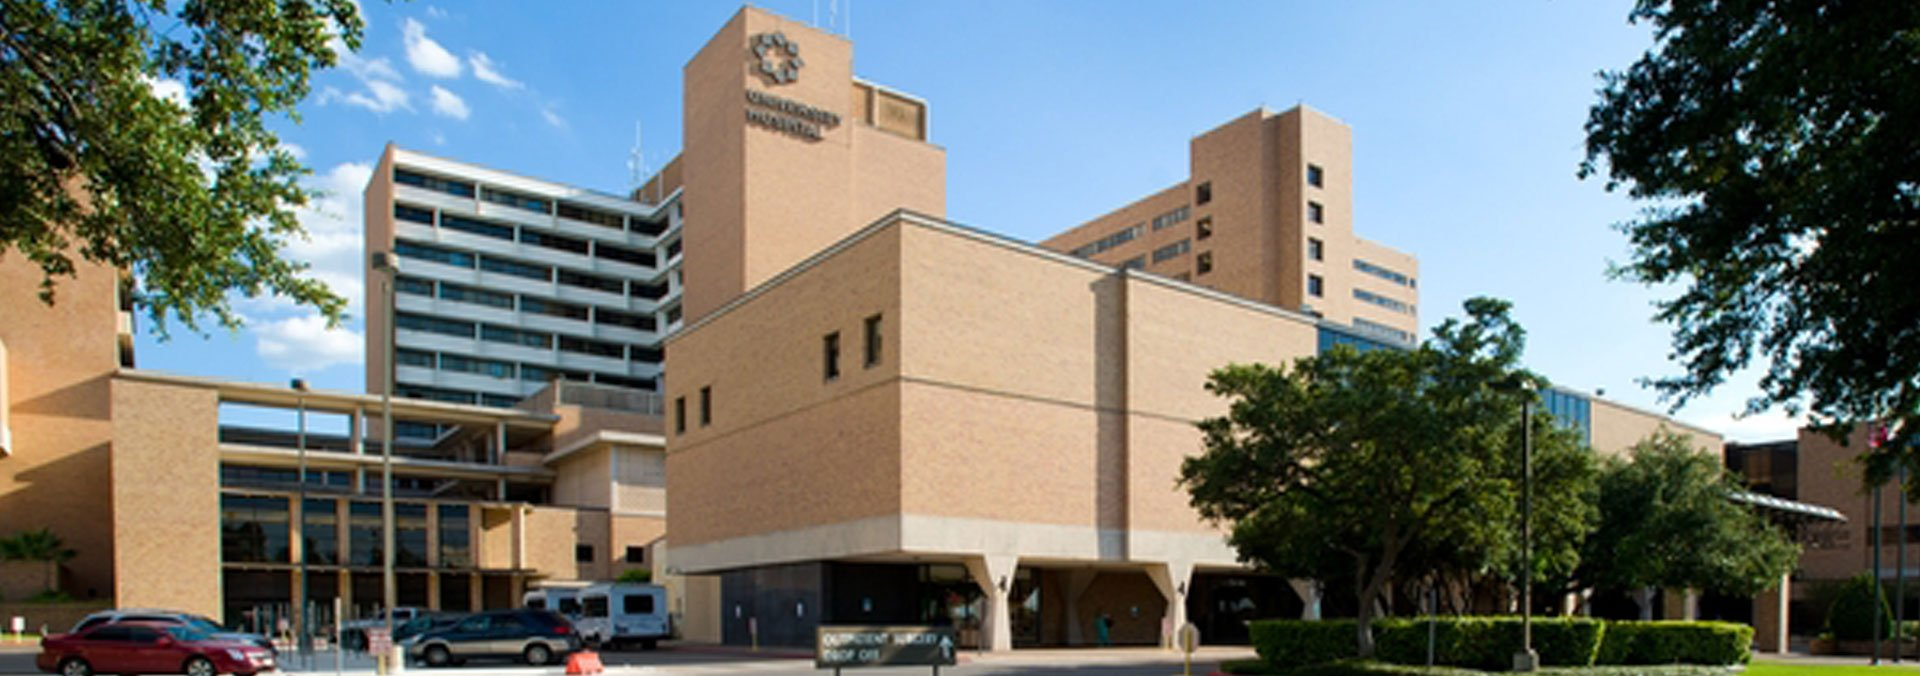 University Health Systems